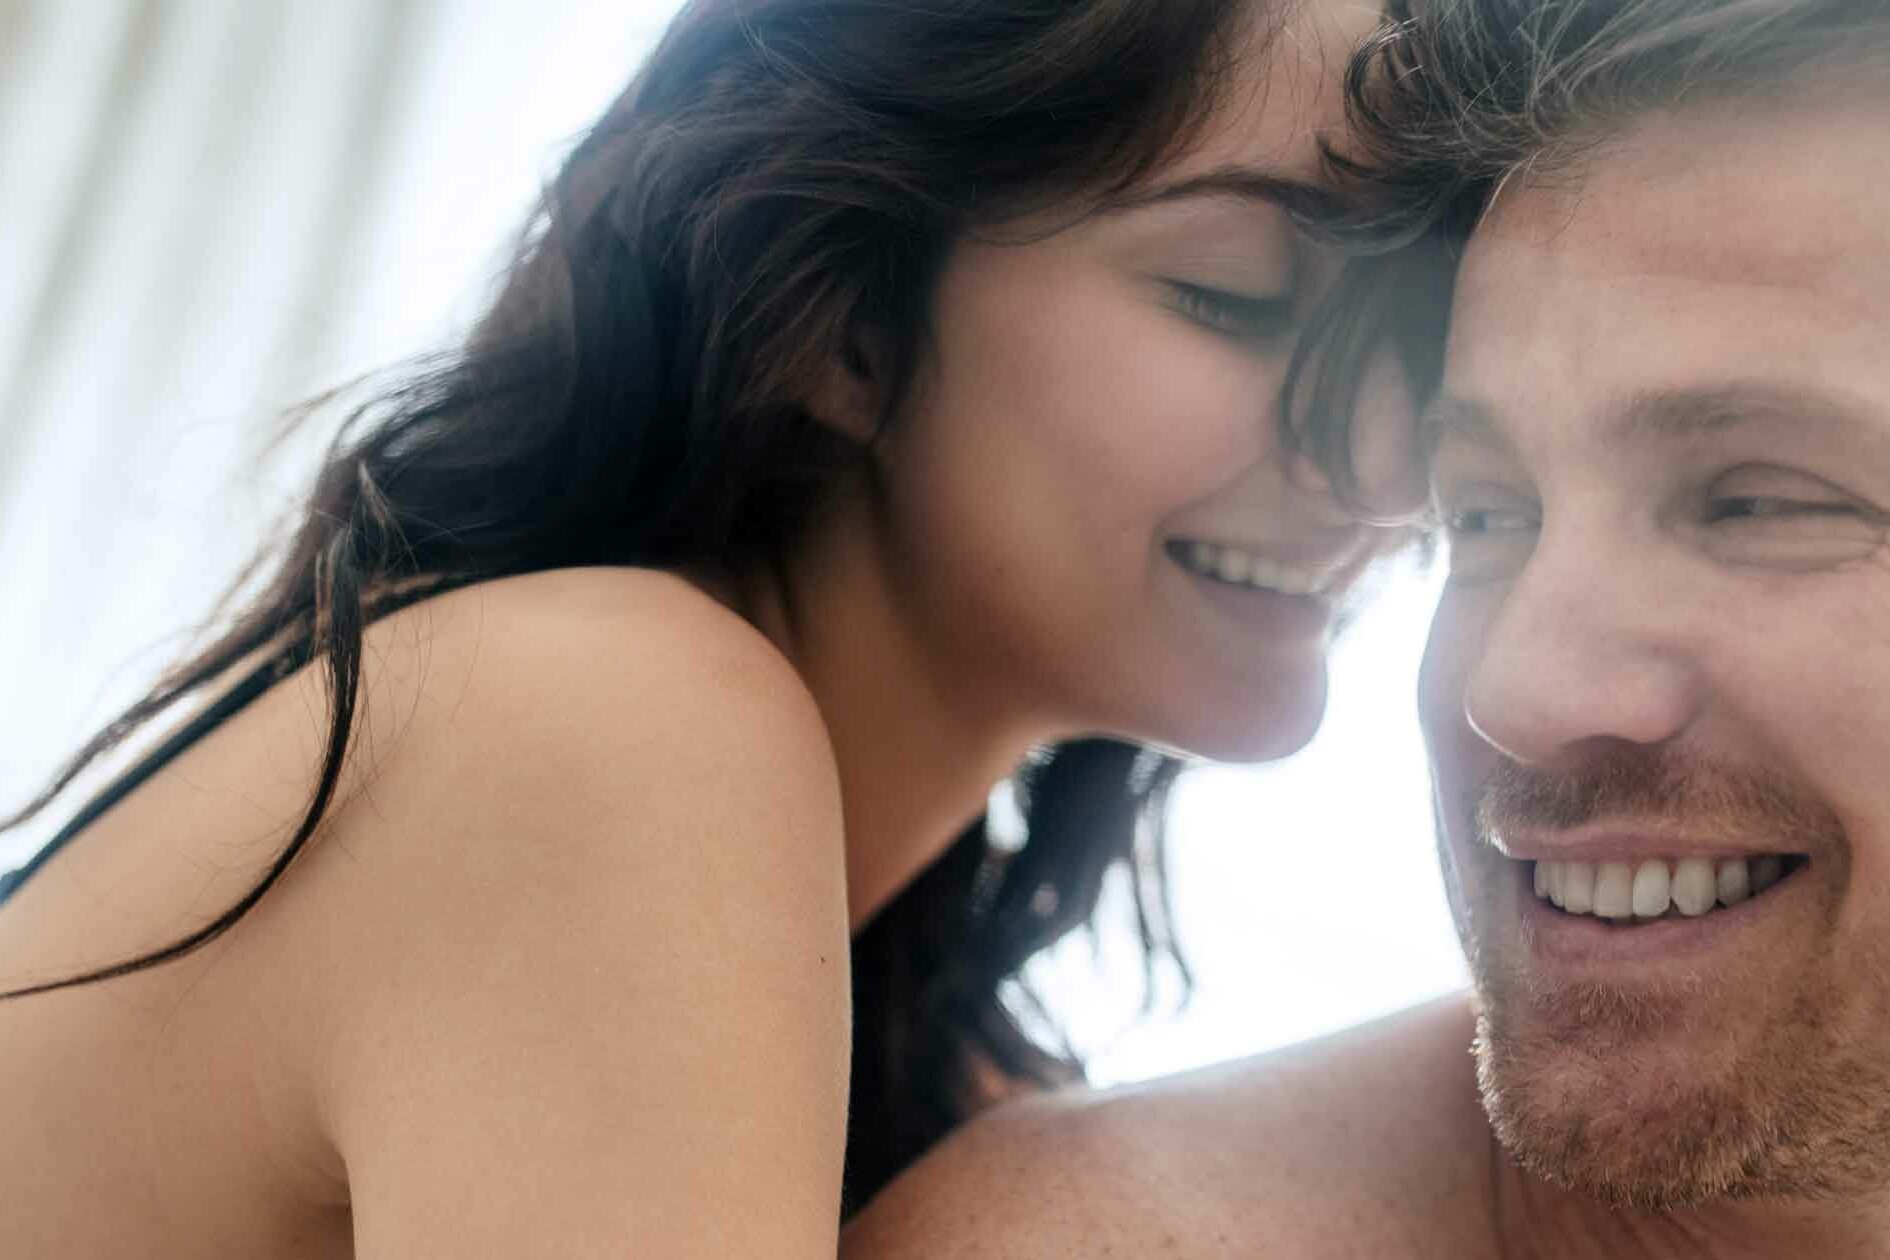 Couple in Bed Together Sharing Intimacy and Laughing